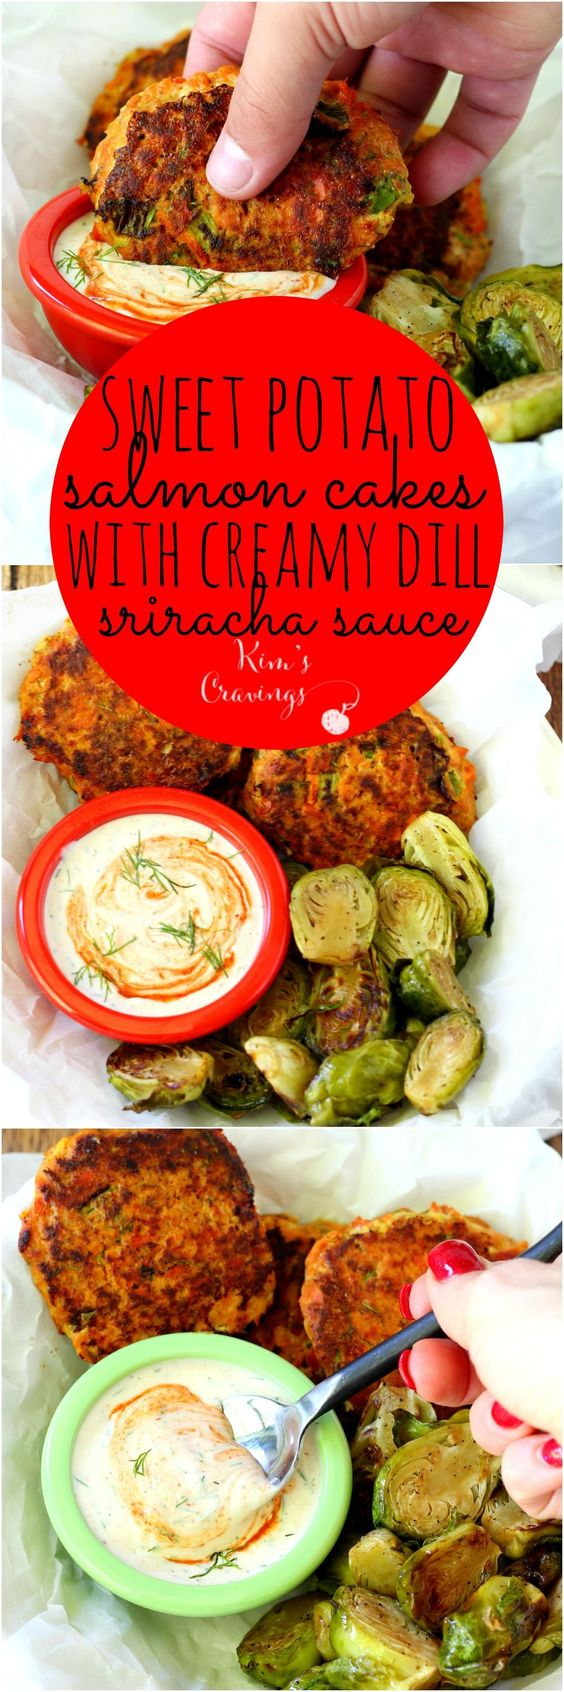 Sweet Potato Salmon Cakes with Creamy Dill Sriracha Sauce- creamy sweet potato binds with flaky pan-seared salmon in this uber-healthy super food combo. Complete meal with Brussels sprouts can be on your table in about 40 minutes and is gluten-free.